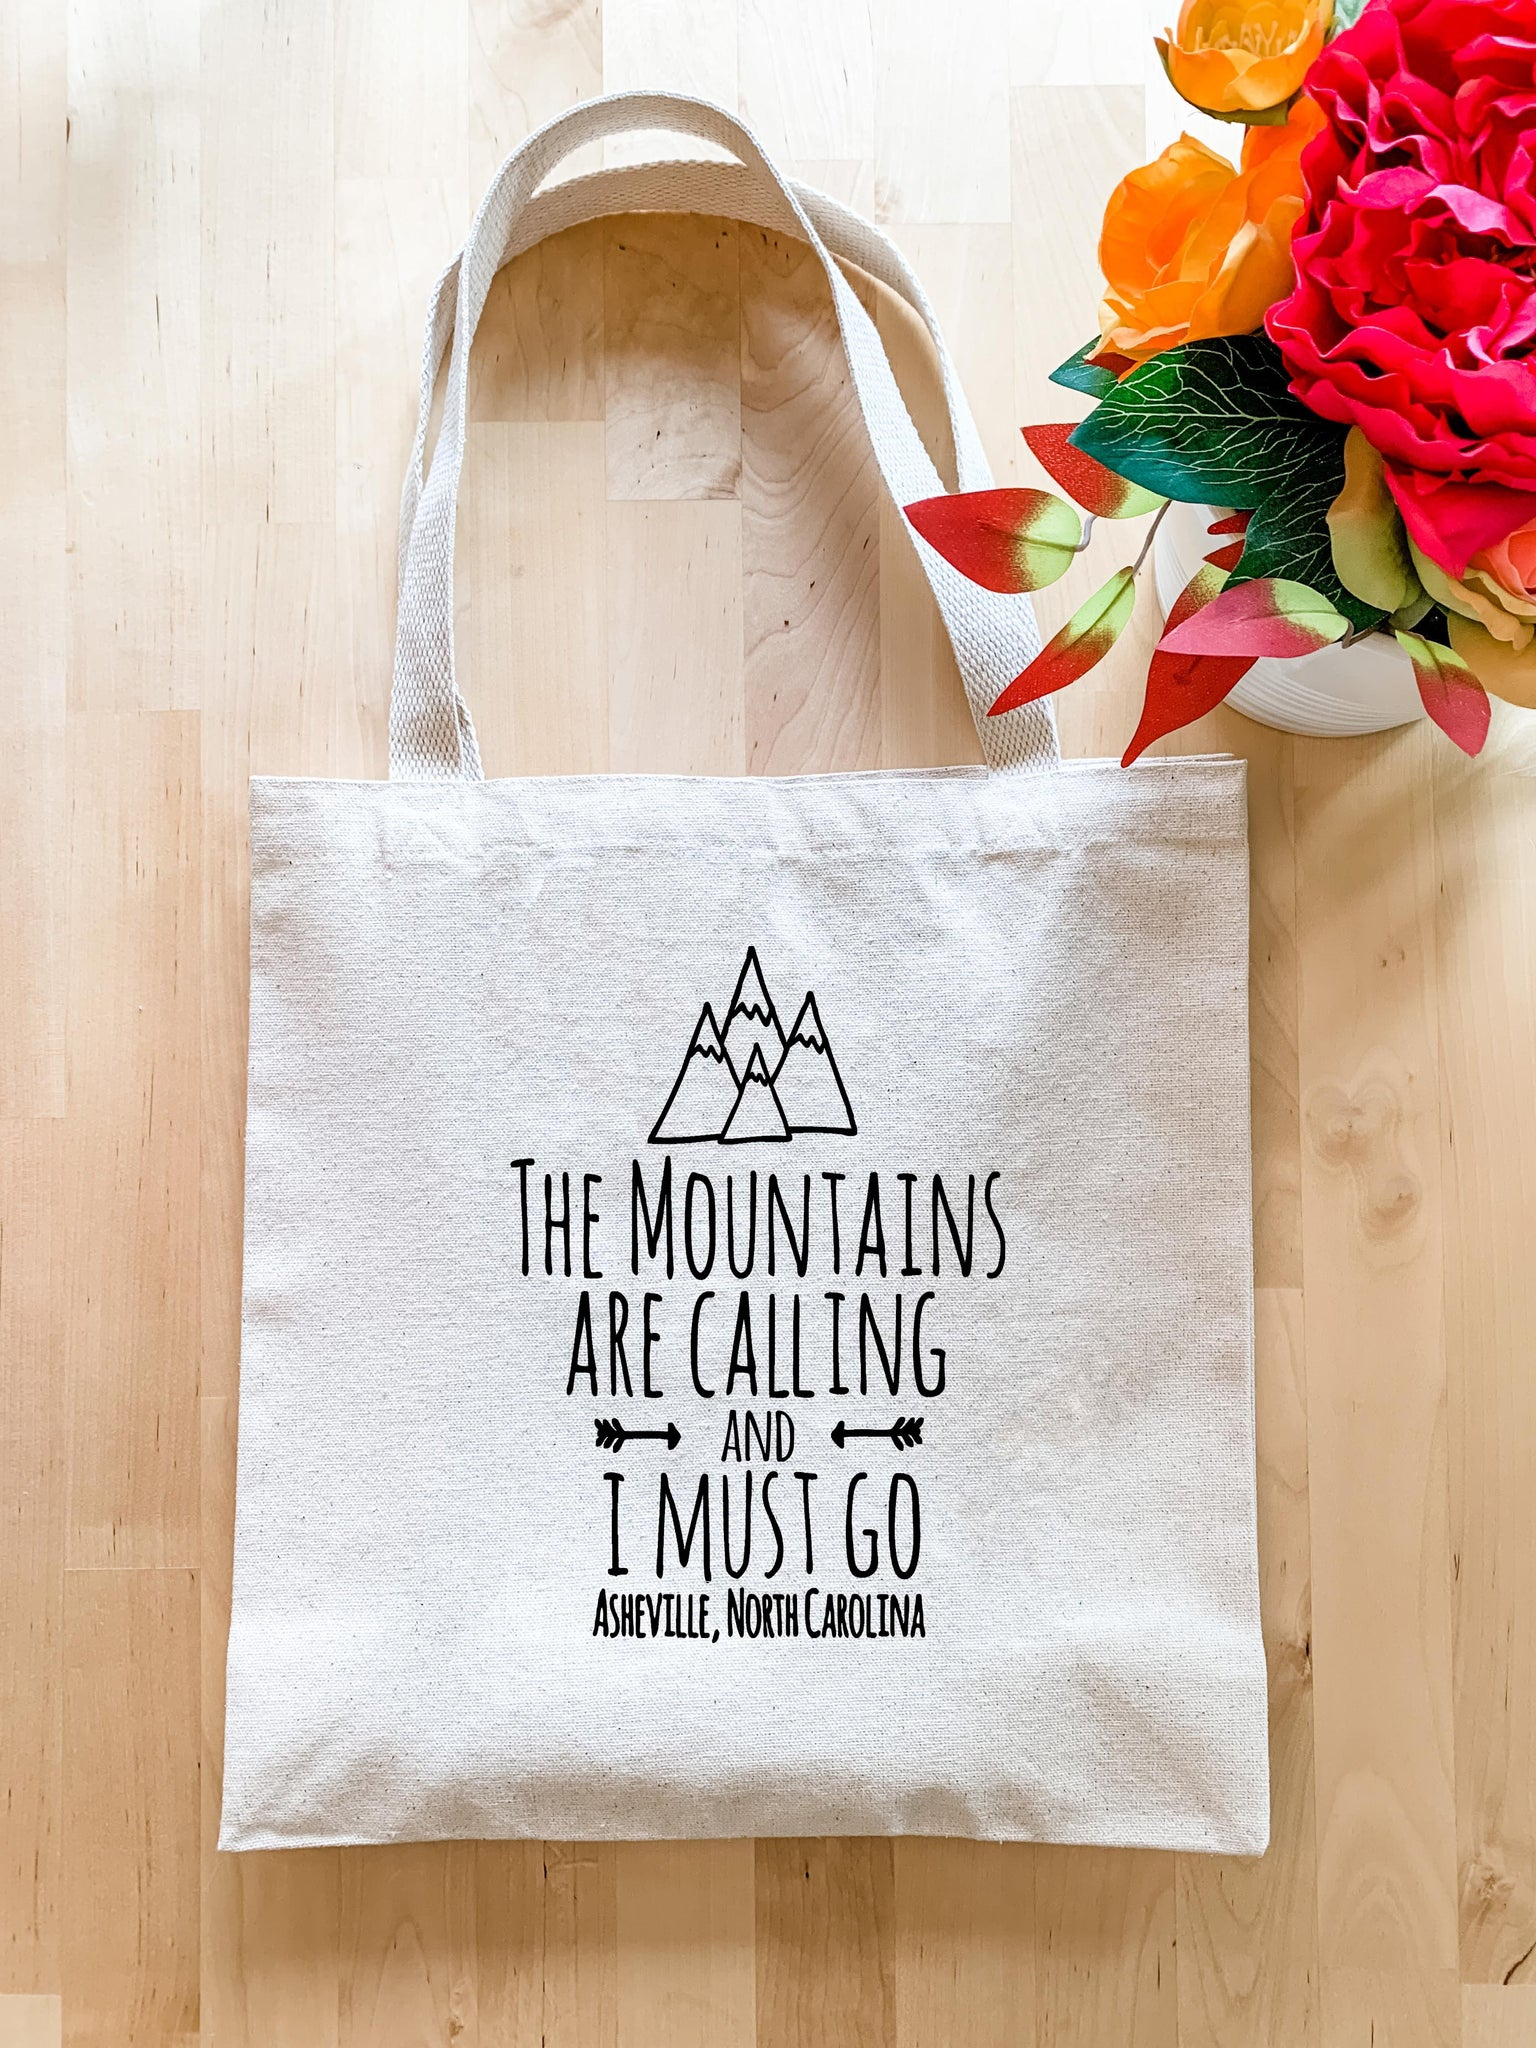 The Mountains are Calling and I Must Go, Asheville NC - Tote Bag - MoonlightMakers